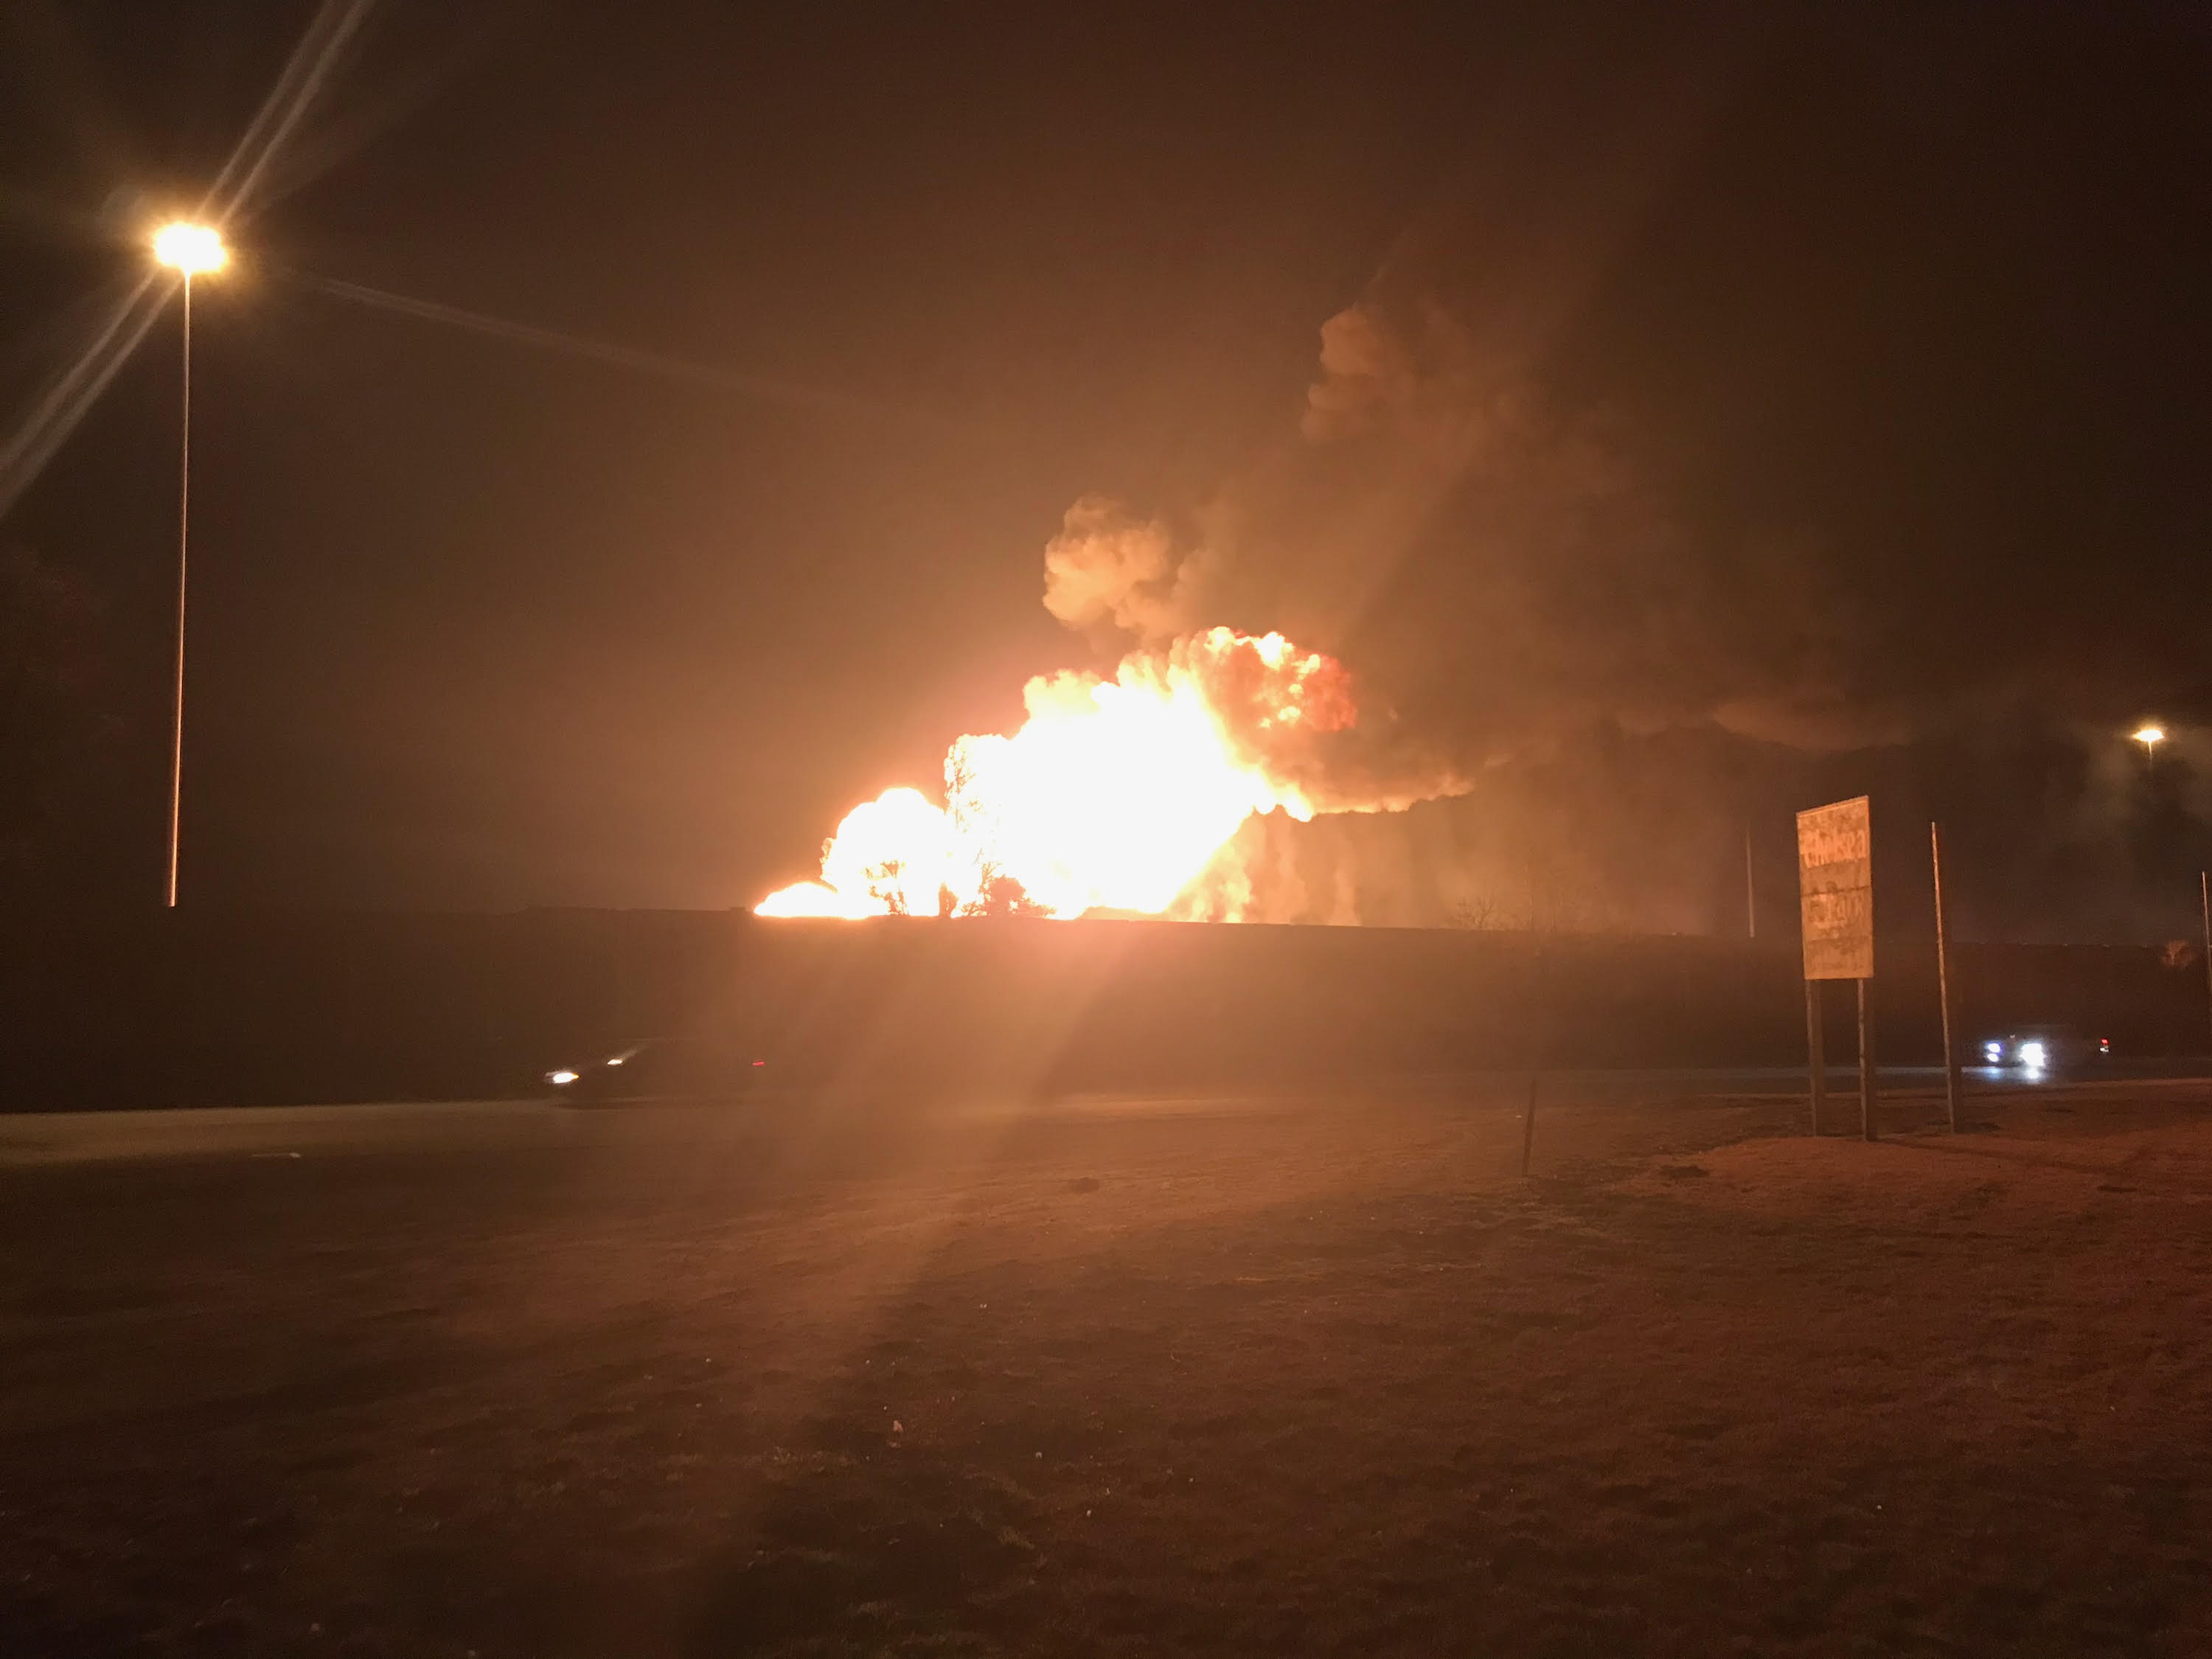 Double tanker vehicle explodes, closes I-15 (Photo: Matt Gephardt / KUTV)